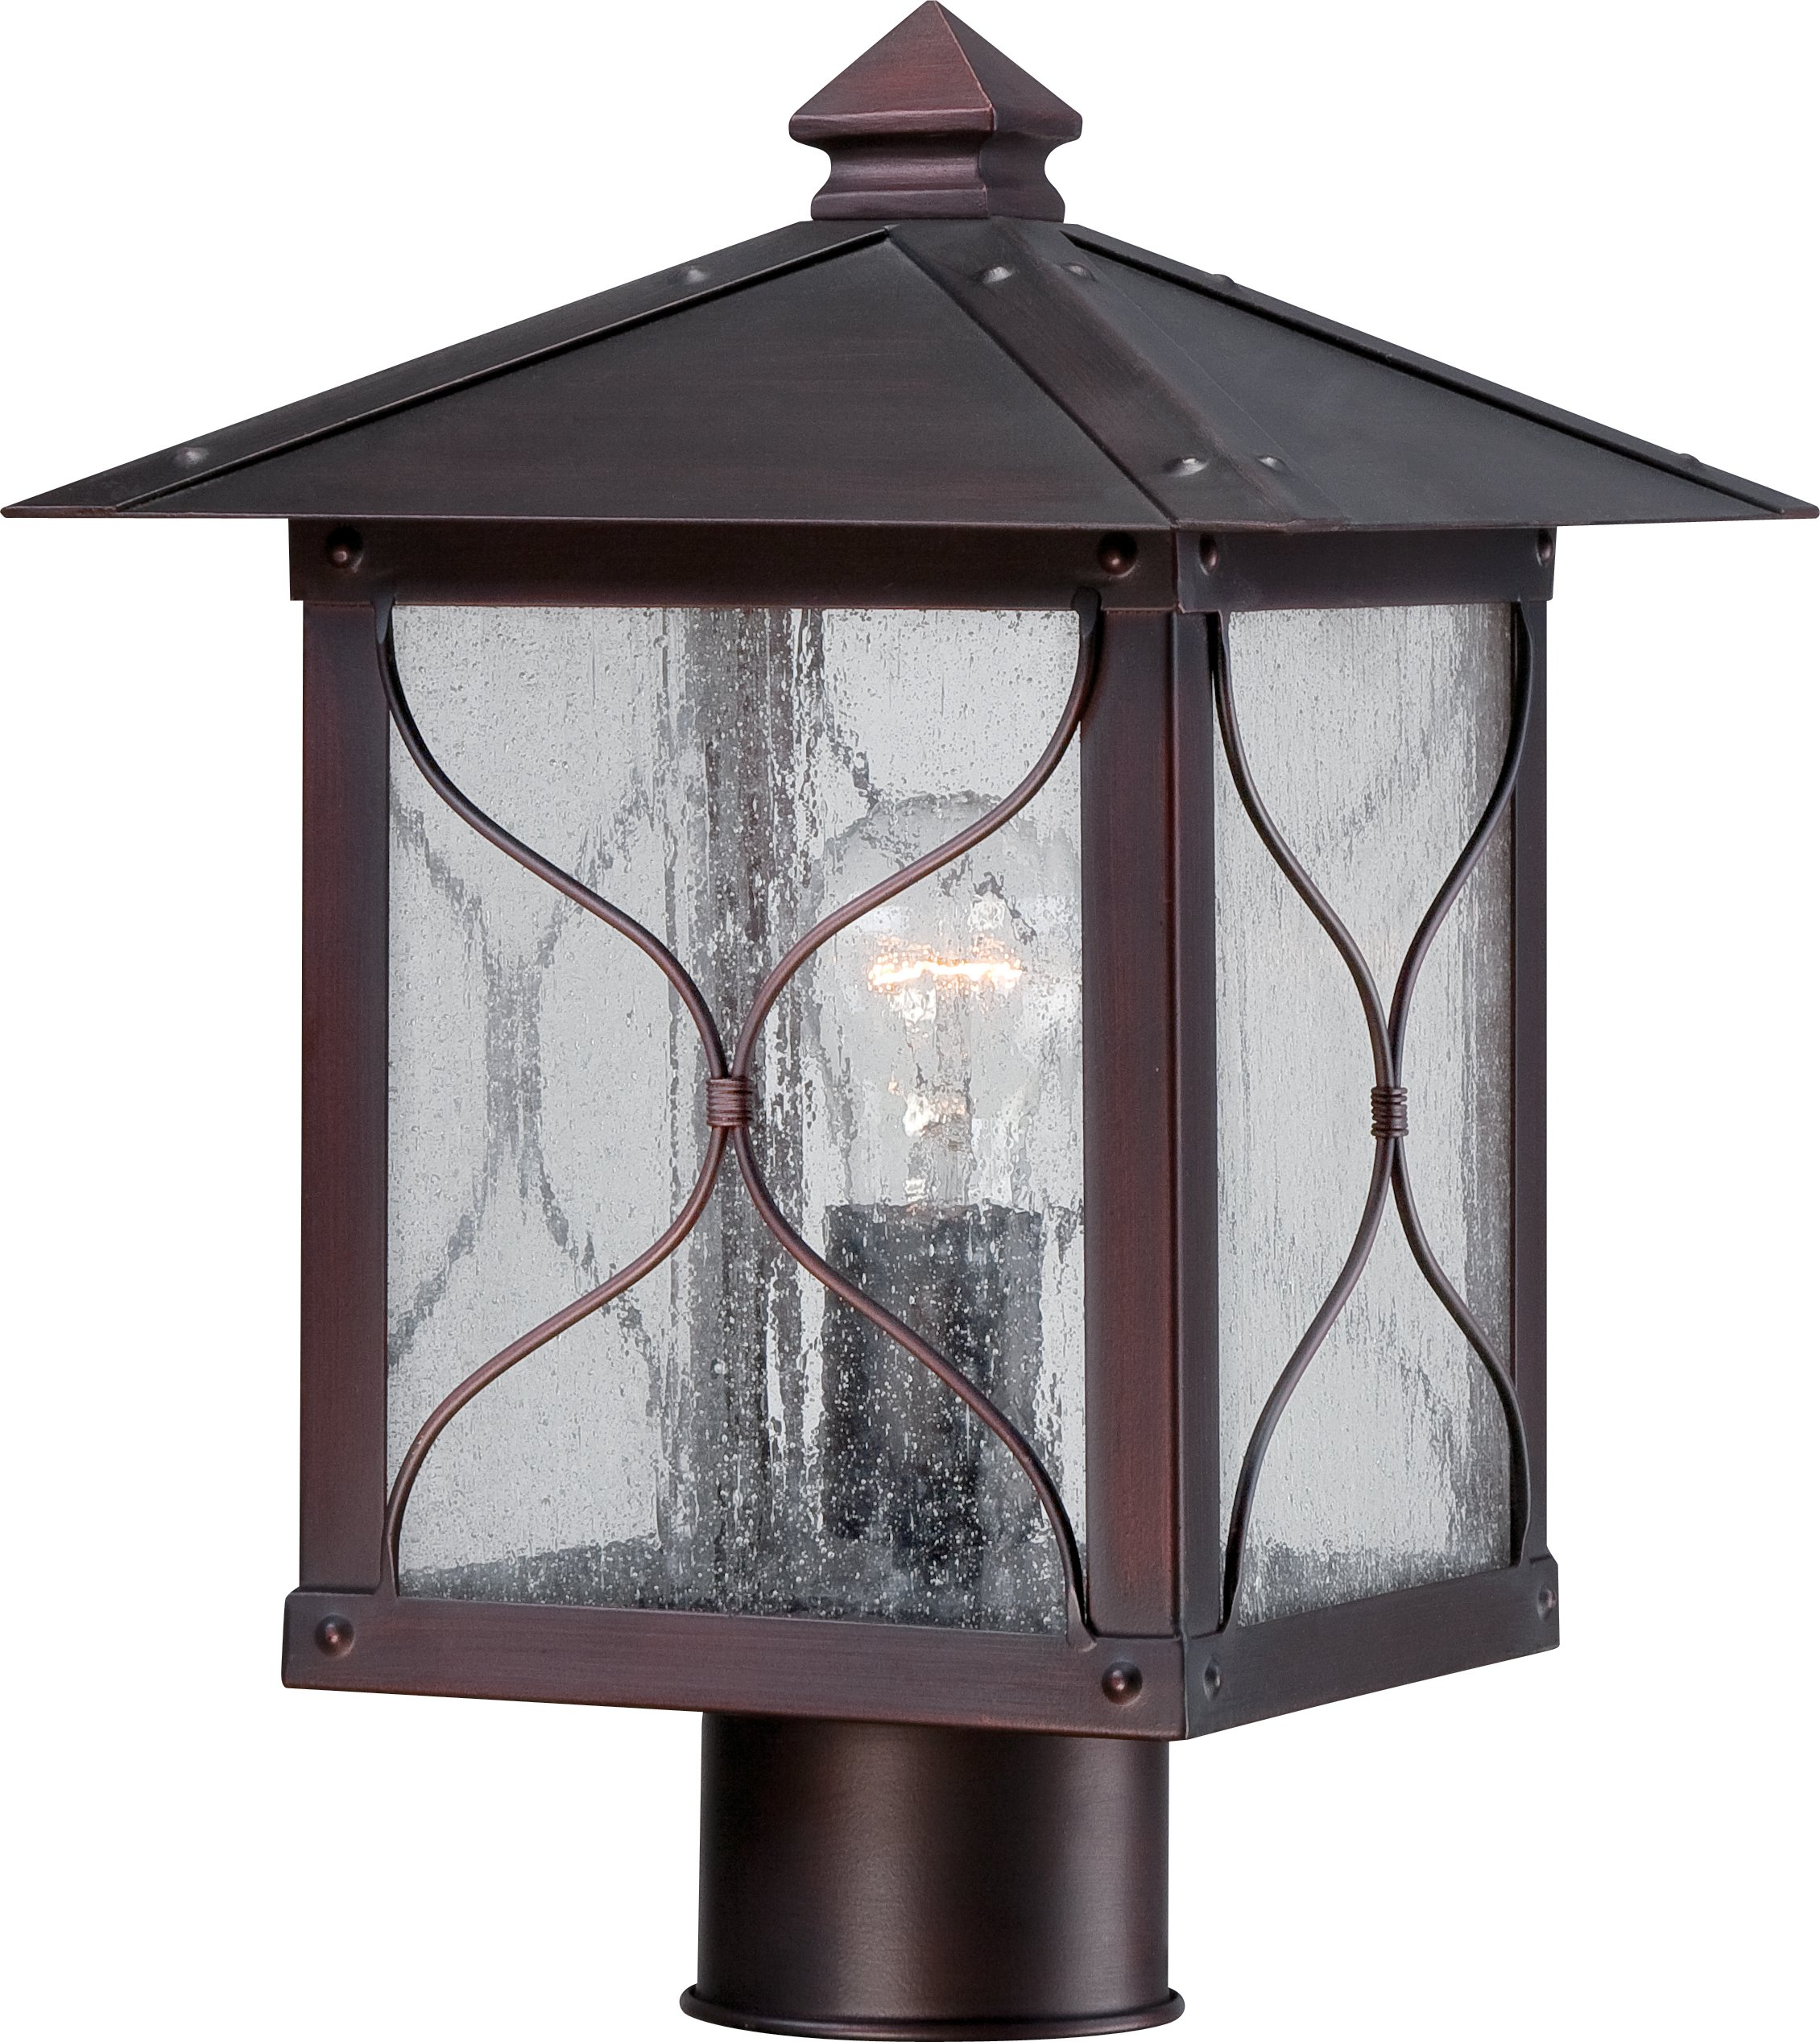 Nuvo Lighting 60/5615 Vega Post One Light Lantern 100-watt Outdoor Porch and Patio Lighting with Clear Seeded Glass, Classic Bronze by Nuvo Lighting